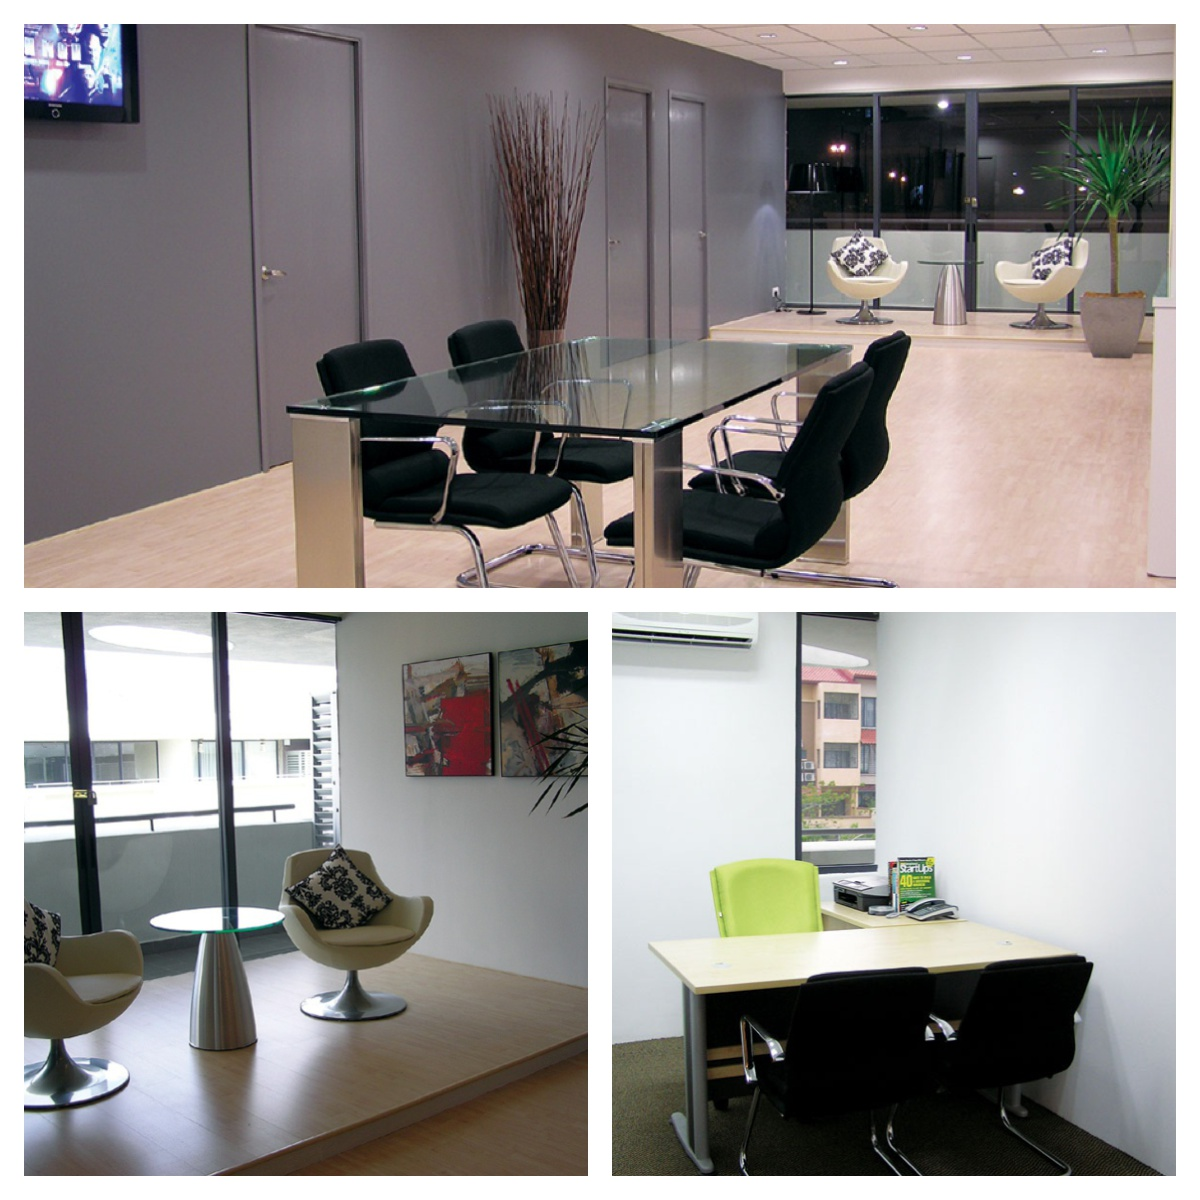 Business Rooms For Rent Near Me